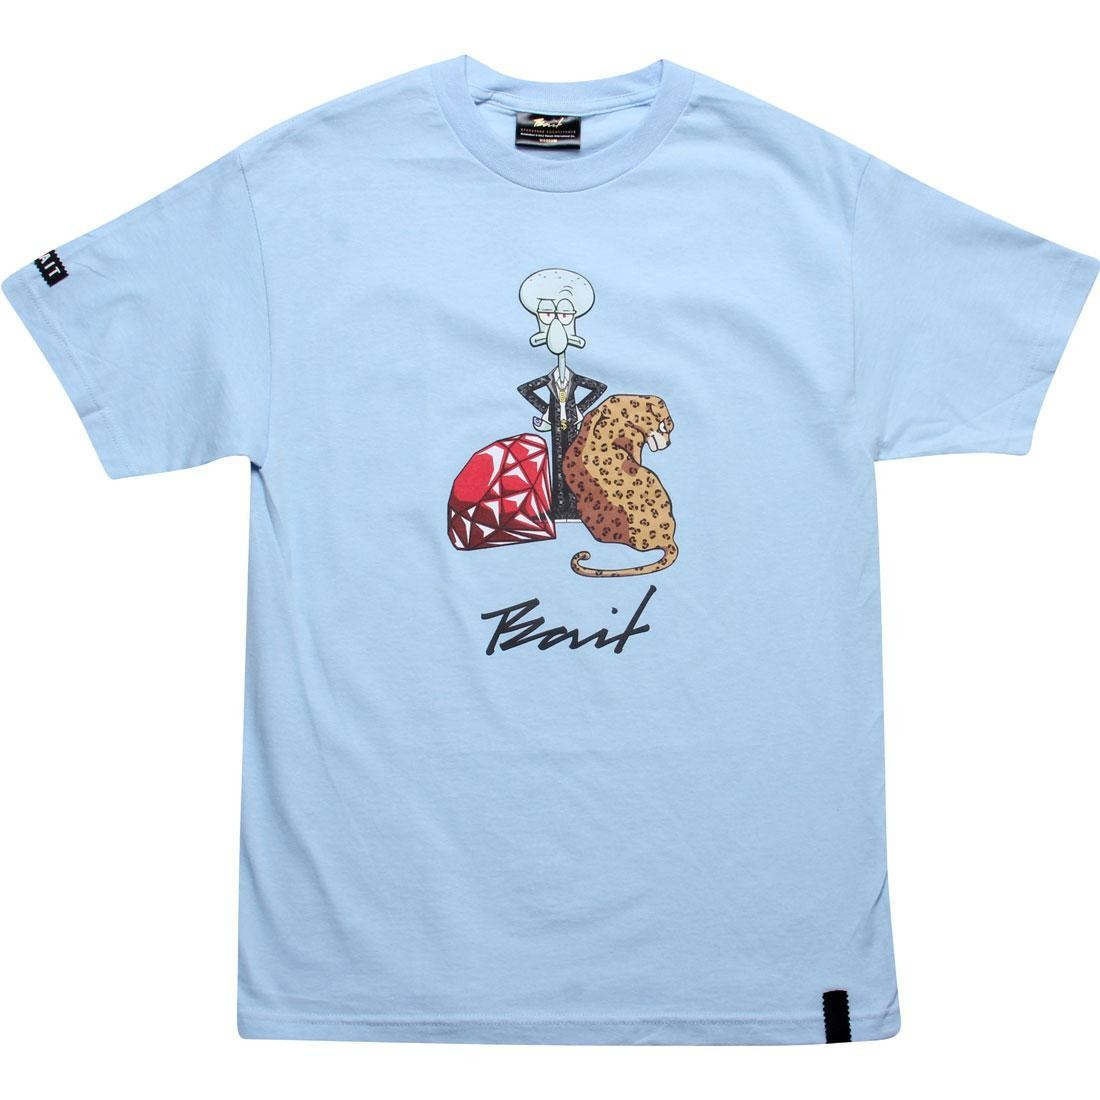 BAIT x SpongeBob Squidward Tee (powder blue)